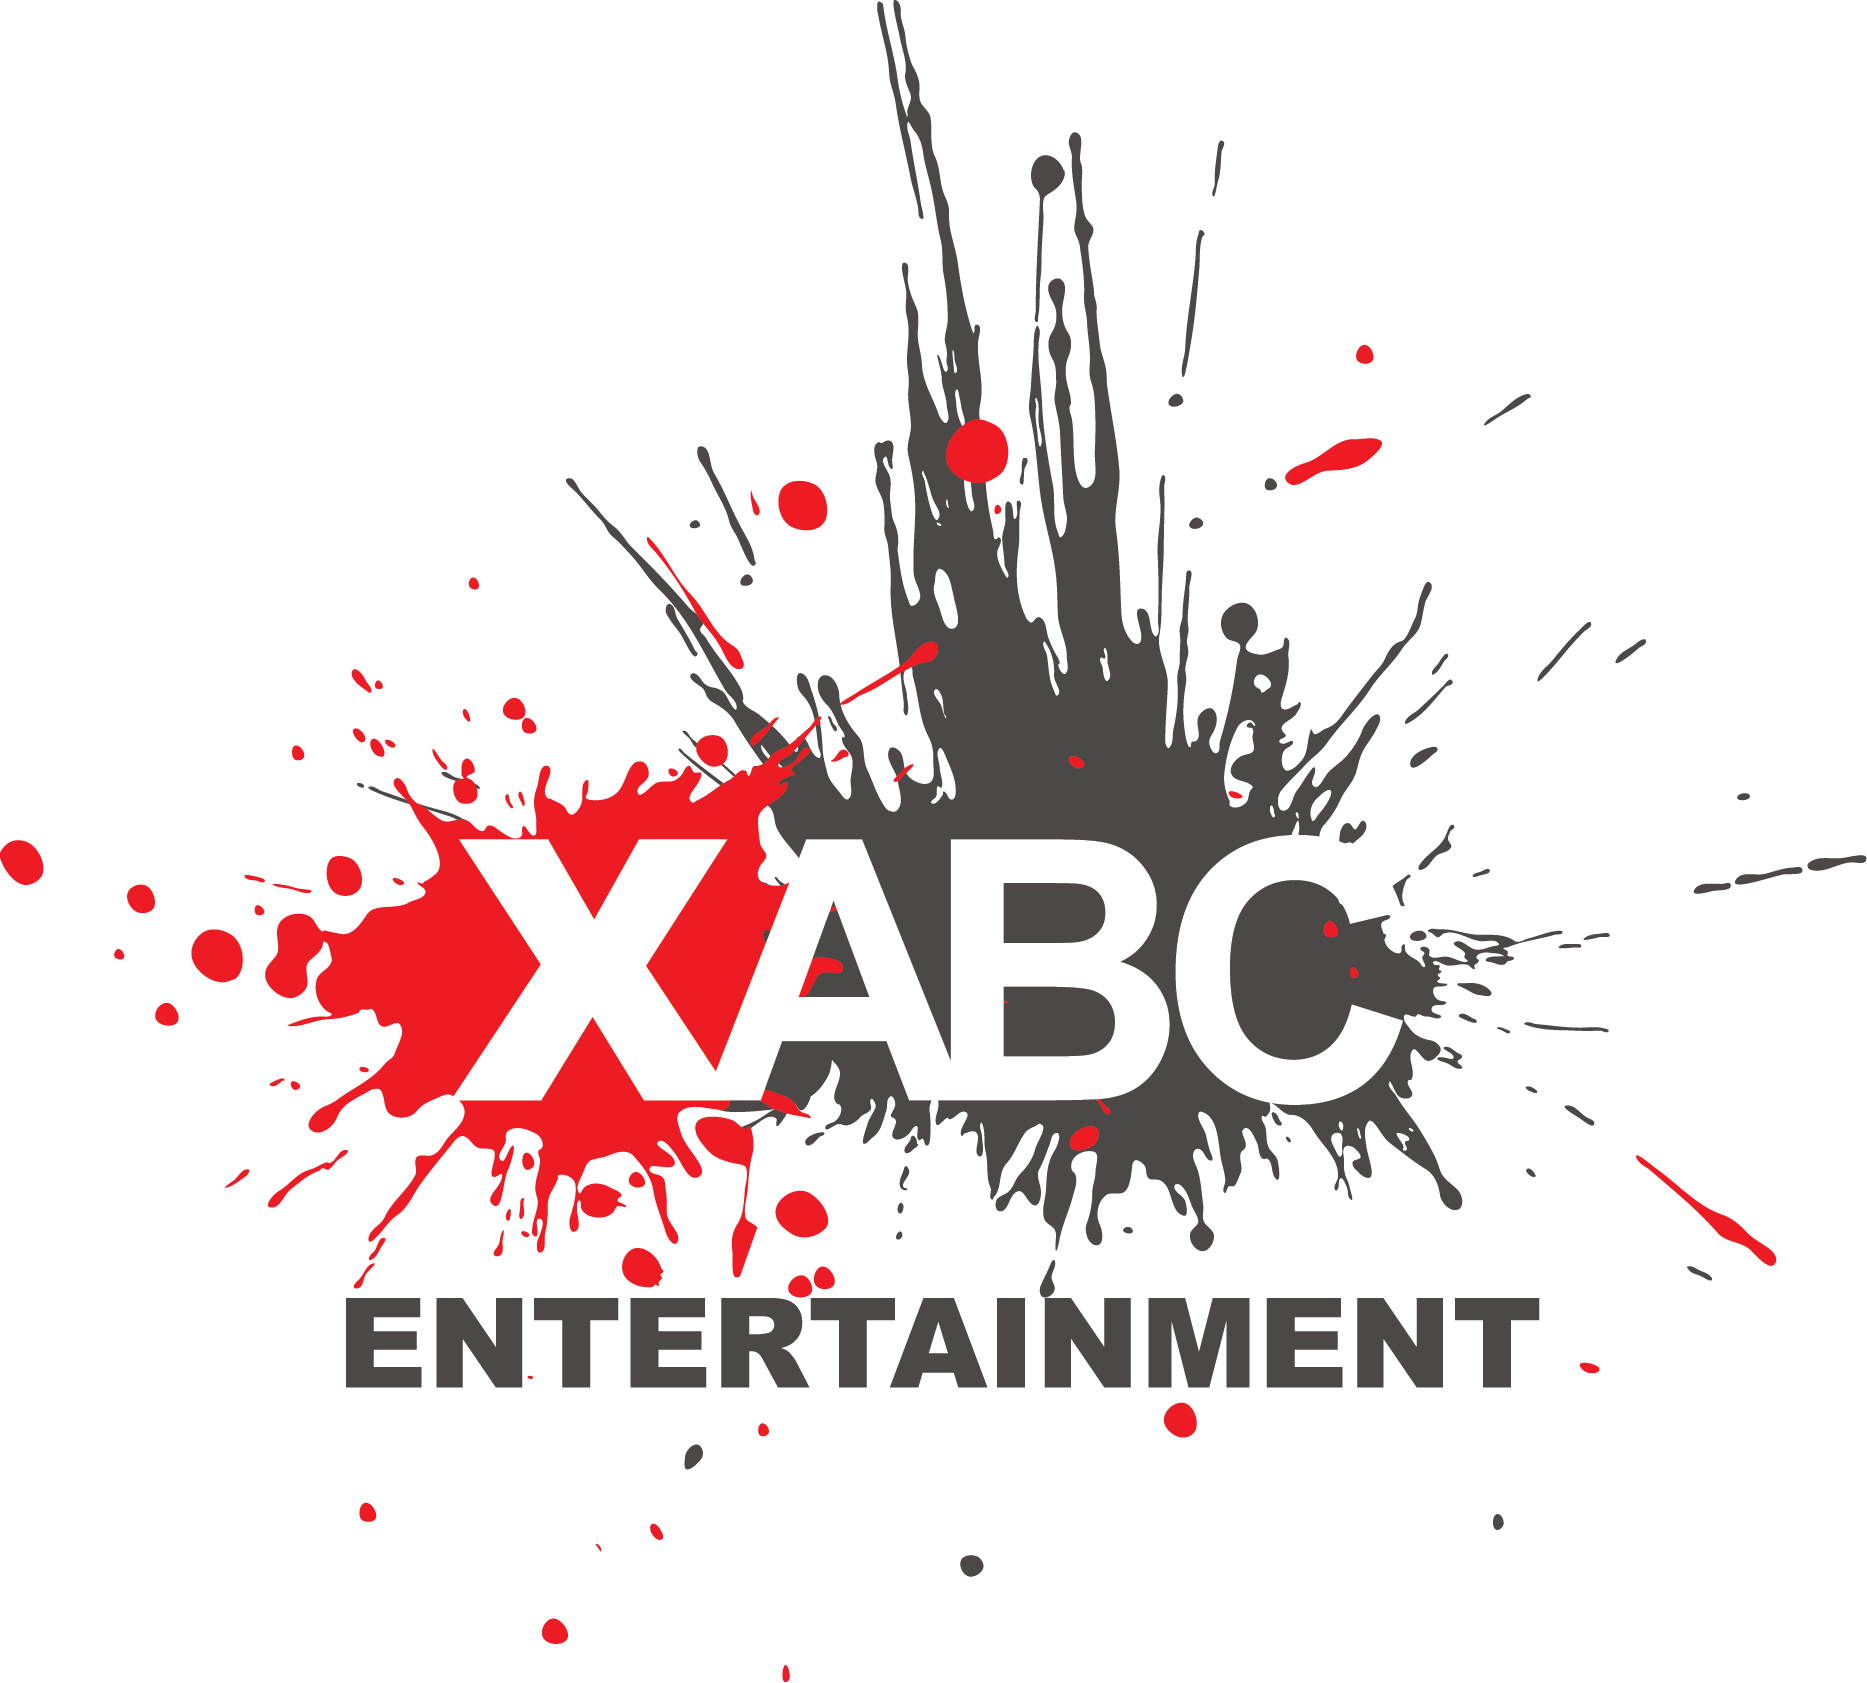 Xabc Entertainment